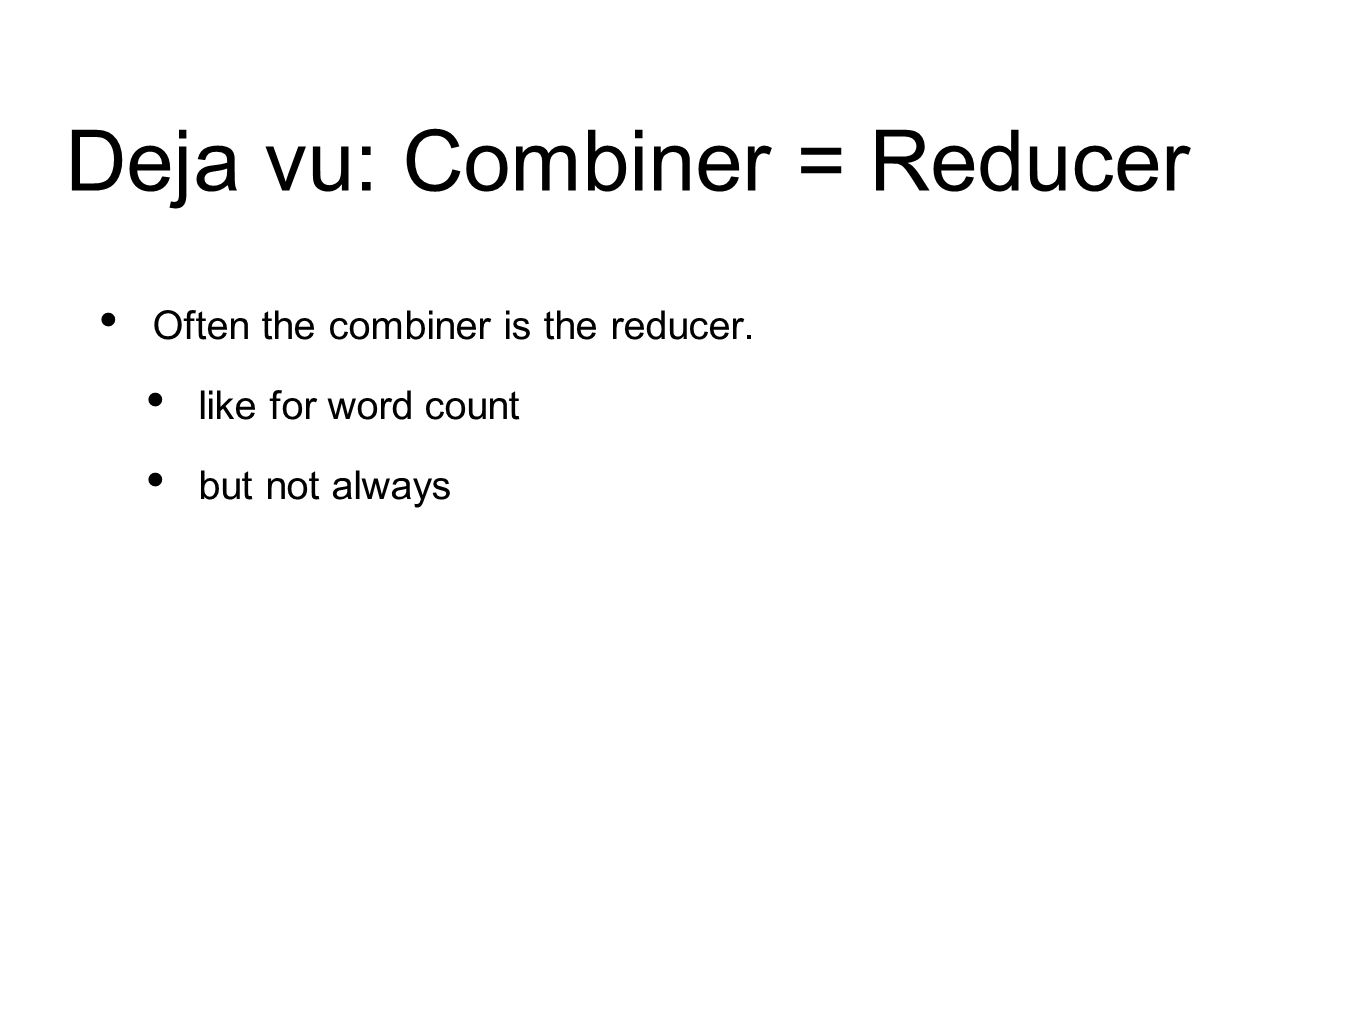 Deja vu: Combiner = Reducer Often the combiner is the reducer. like for word count but not always